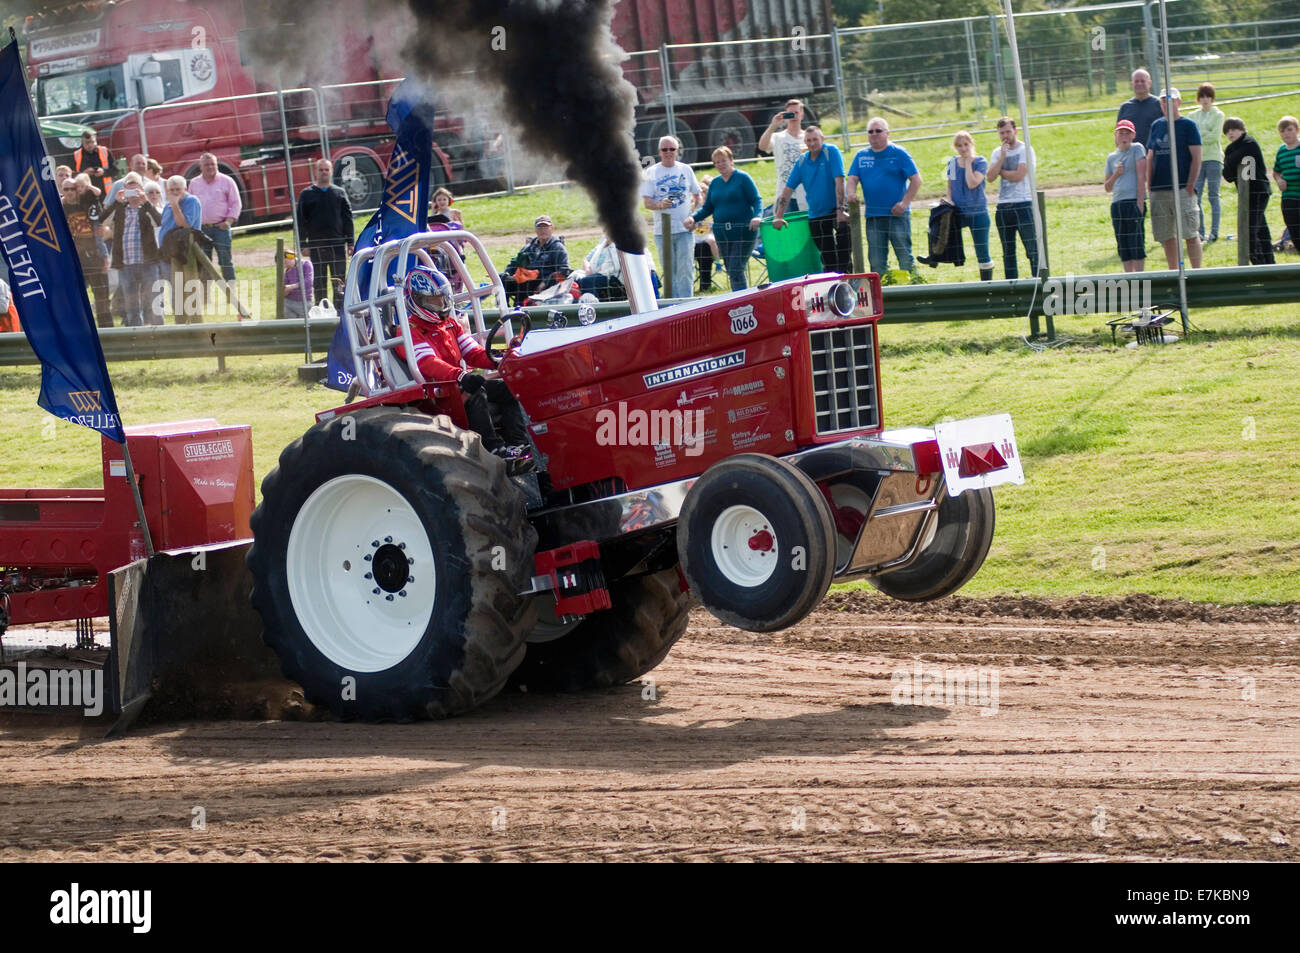 Tractor Pull Sled Flag : Tractor pulling puller pullers wheelie dragging a weighted